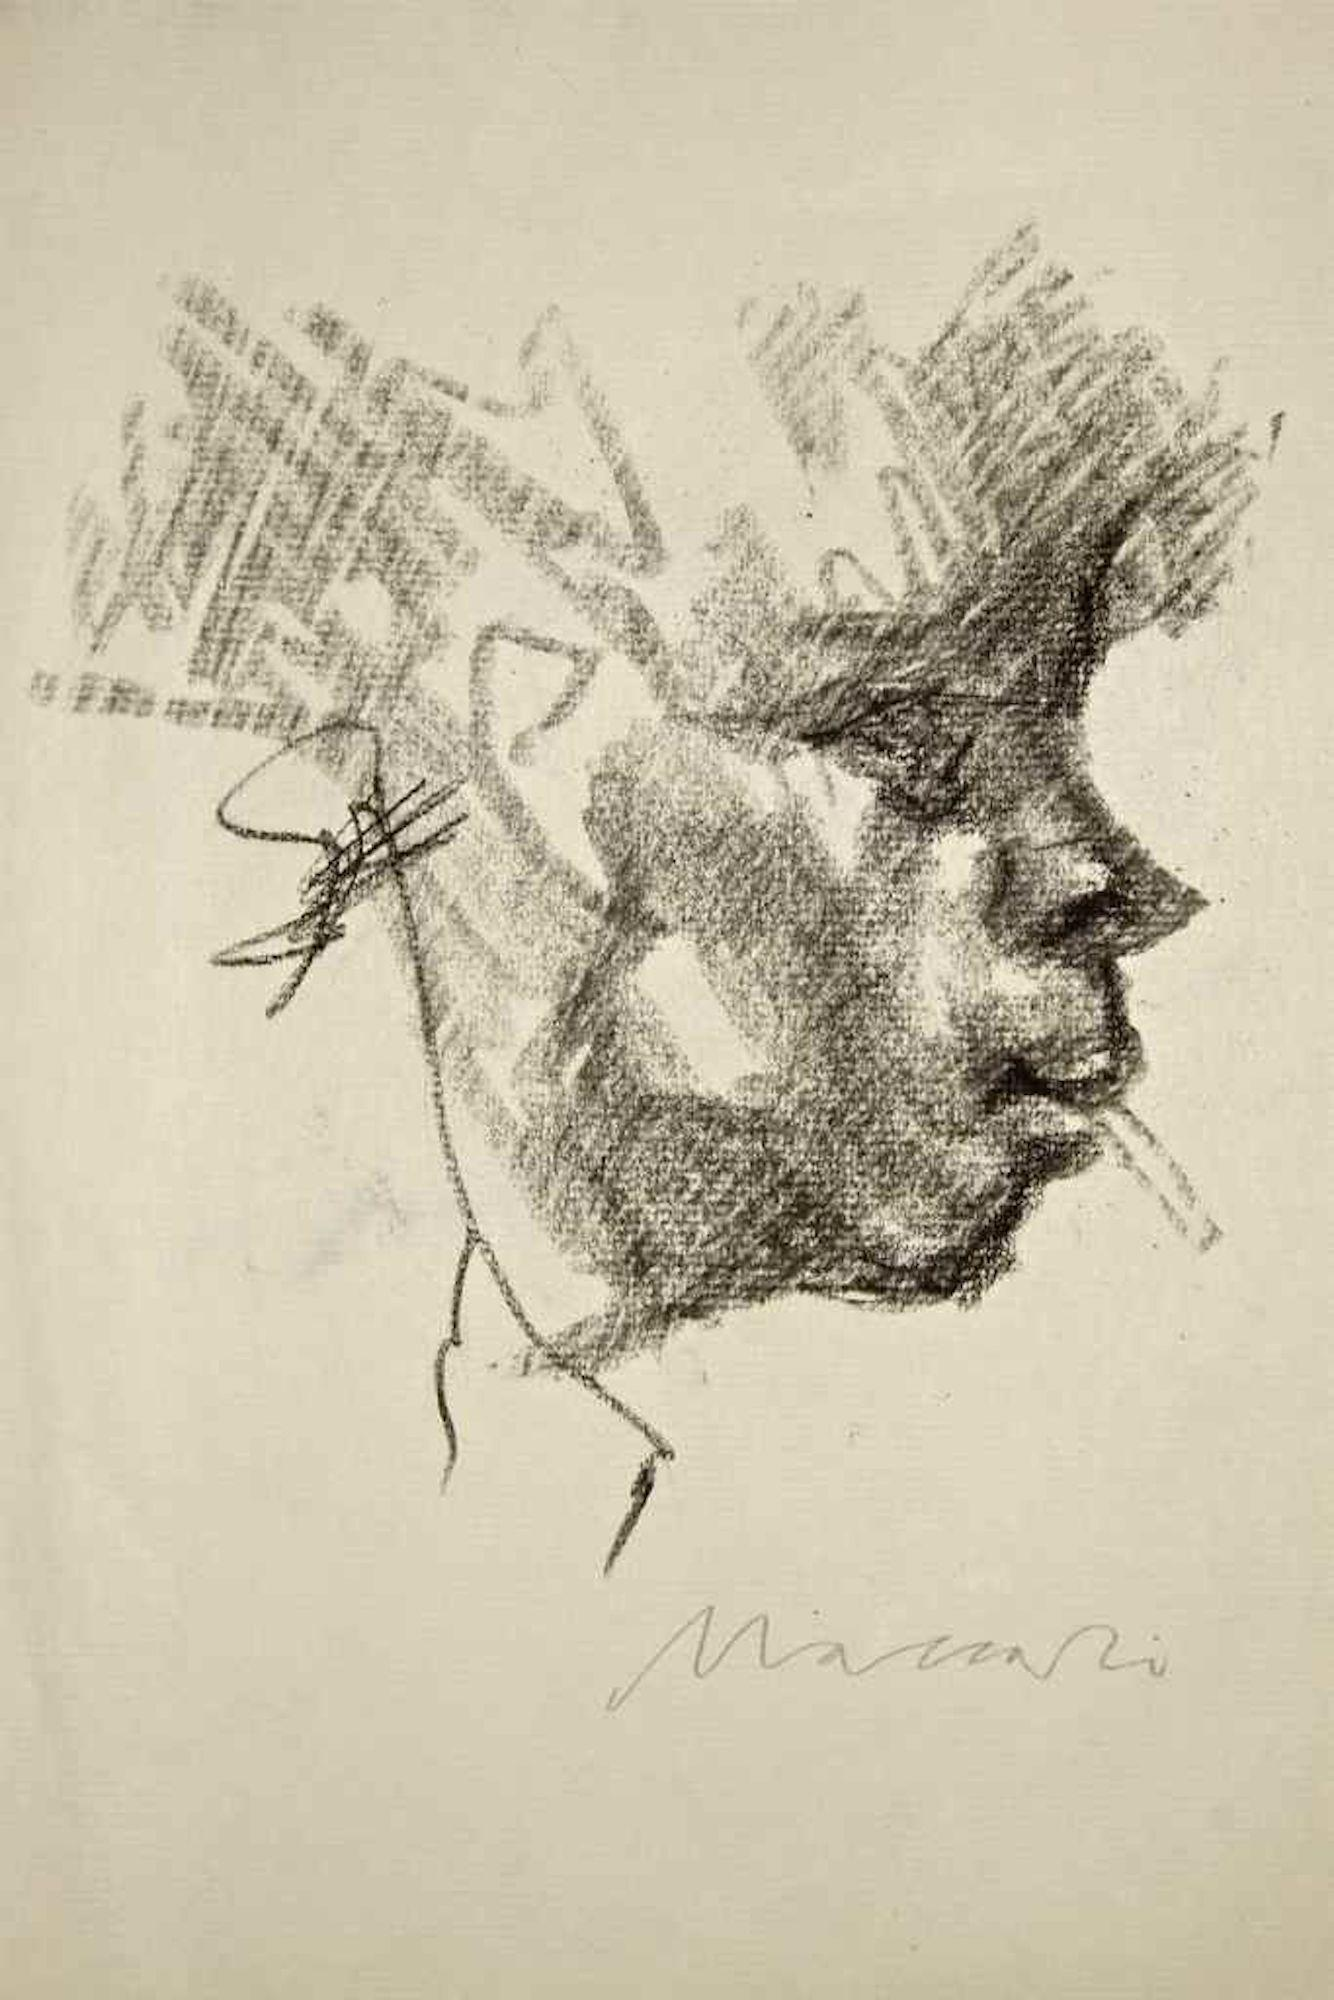 The Smoker (Portrait of Ottone Rosai) - Charcoal Drawing by M. Maccari - 1940/50